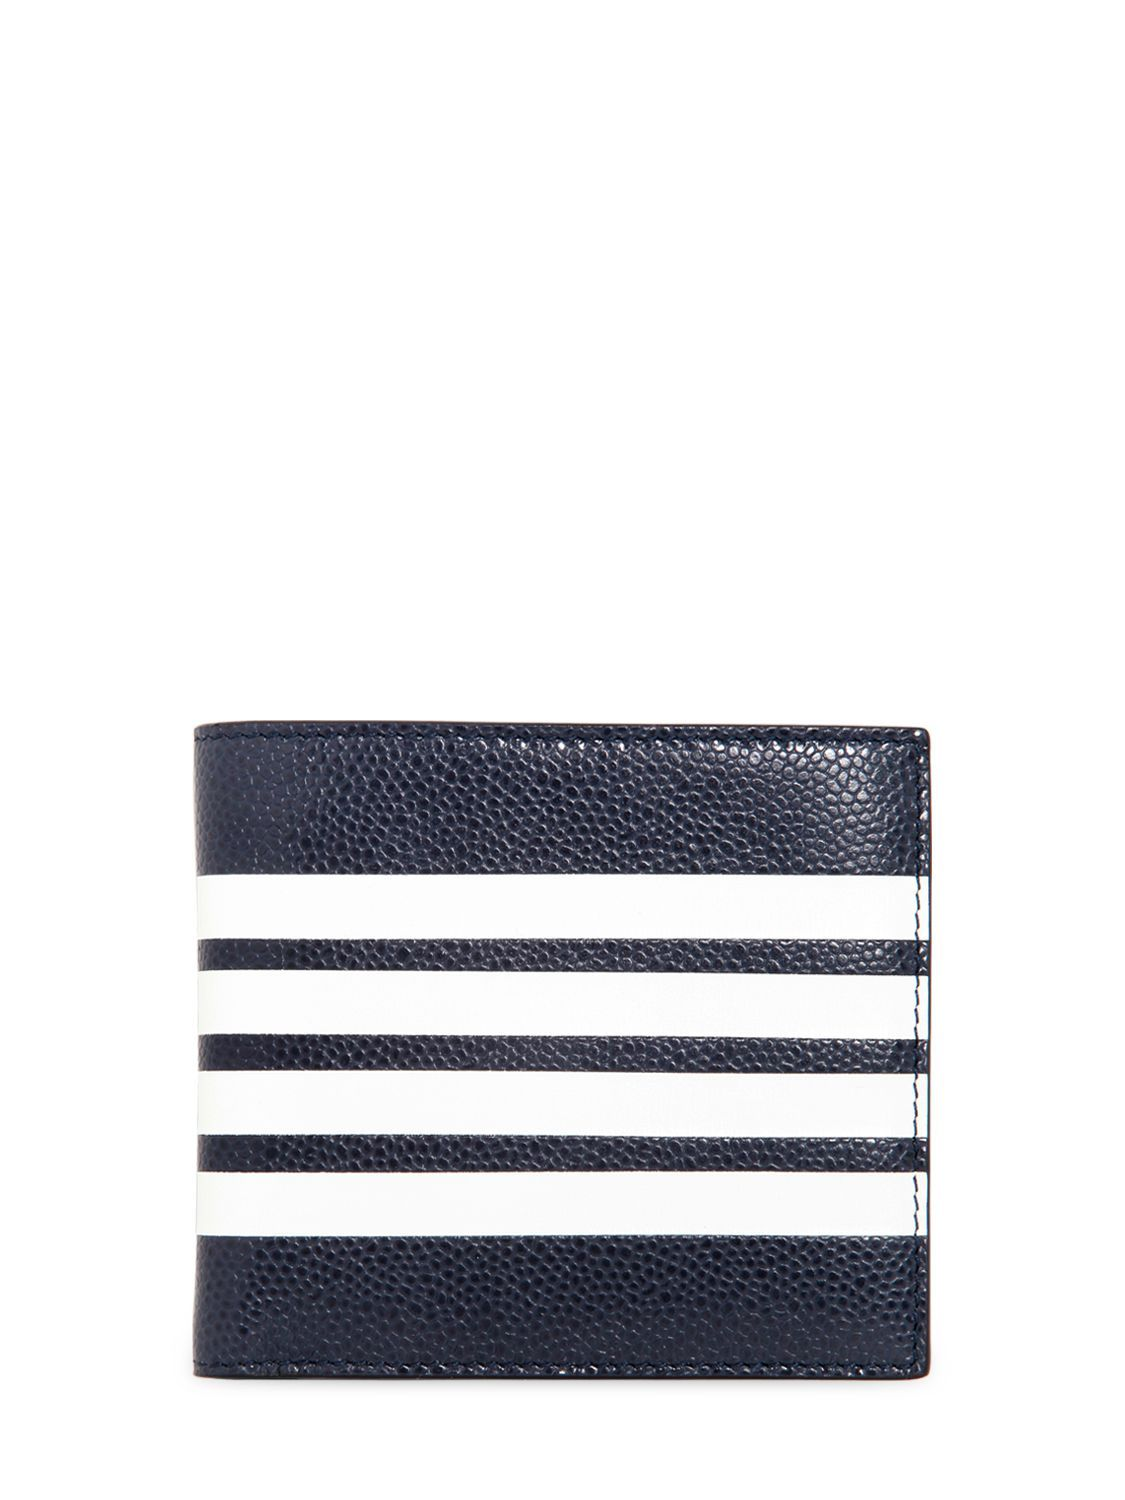 02448cfabbb1 THOM BROWNE BILLFOLD LEATHER WALLET W  STRIPES.  thombrowne